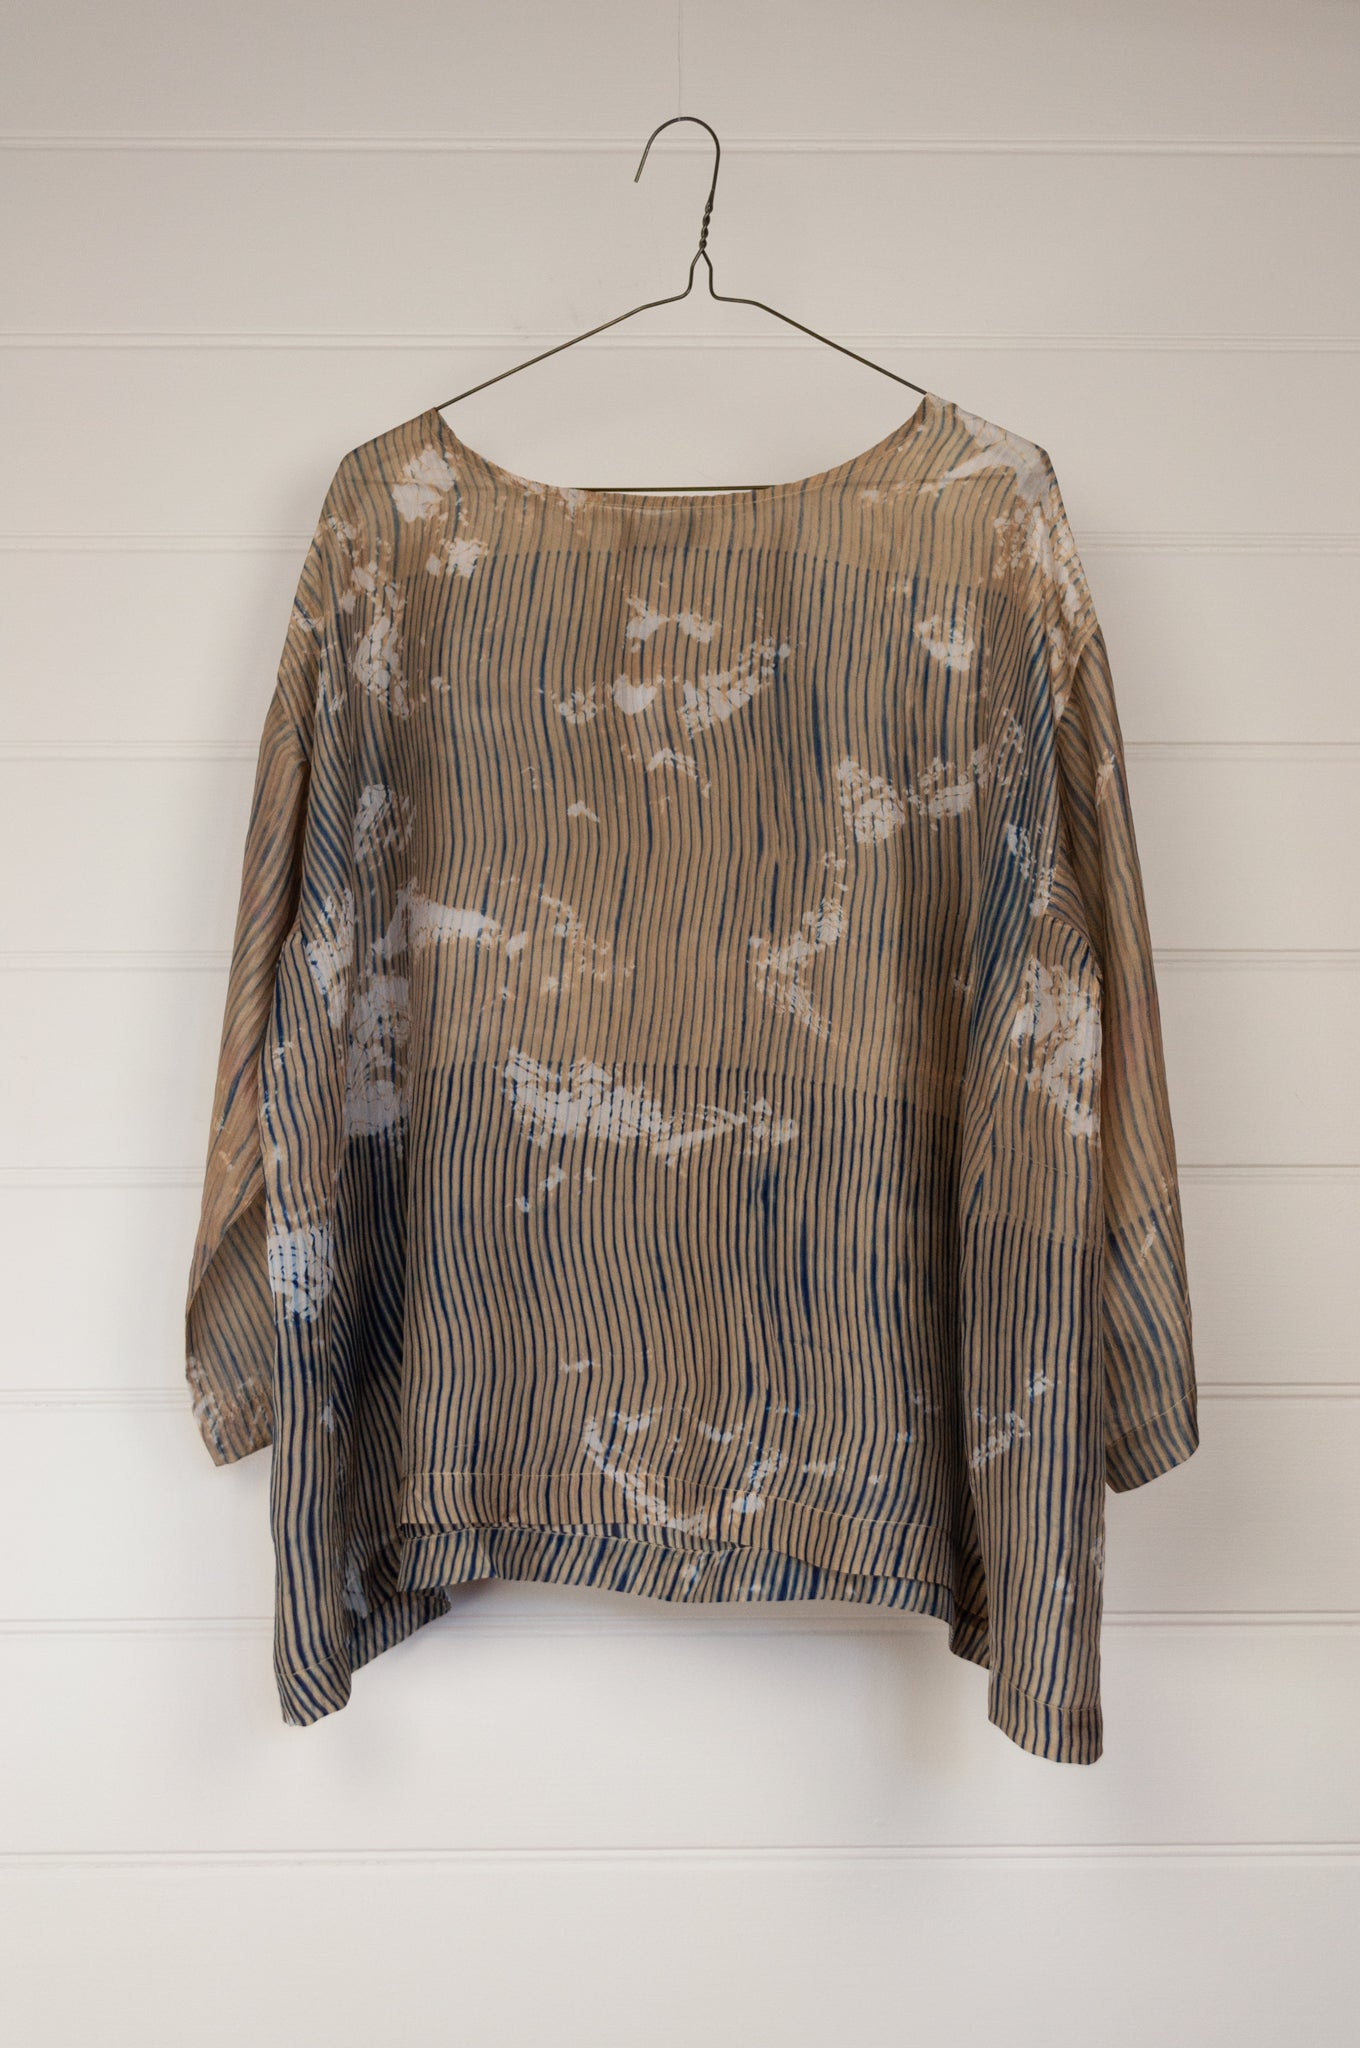 Raga Clara easy fit one size top with three quarter sleeves, indigo shibori on tea coloured natural silk with over bleach patterning.